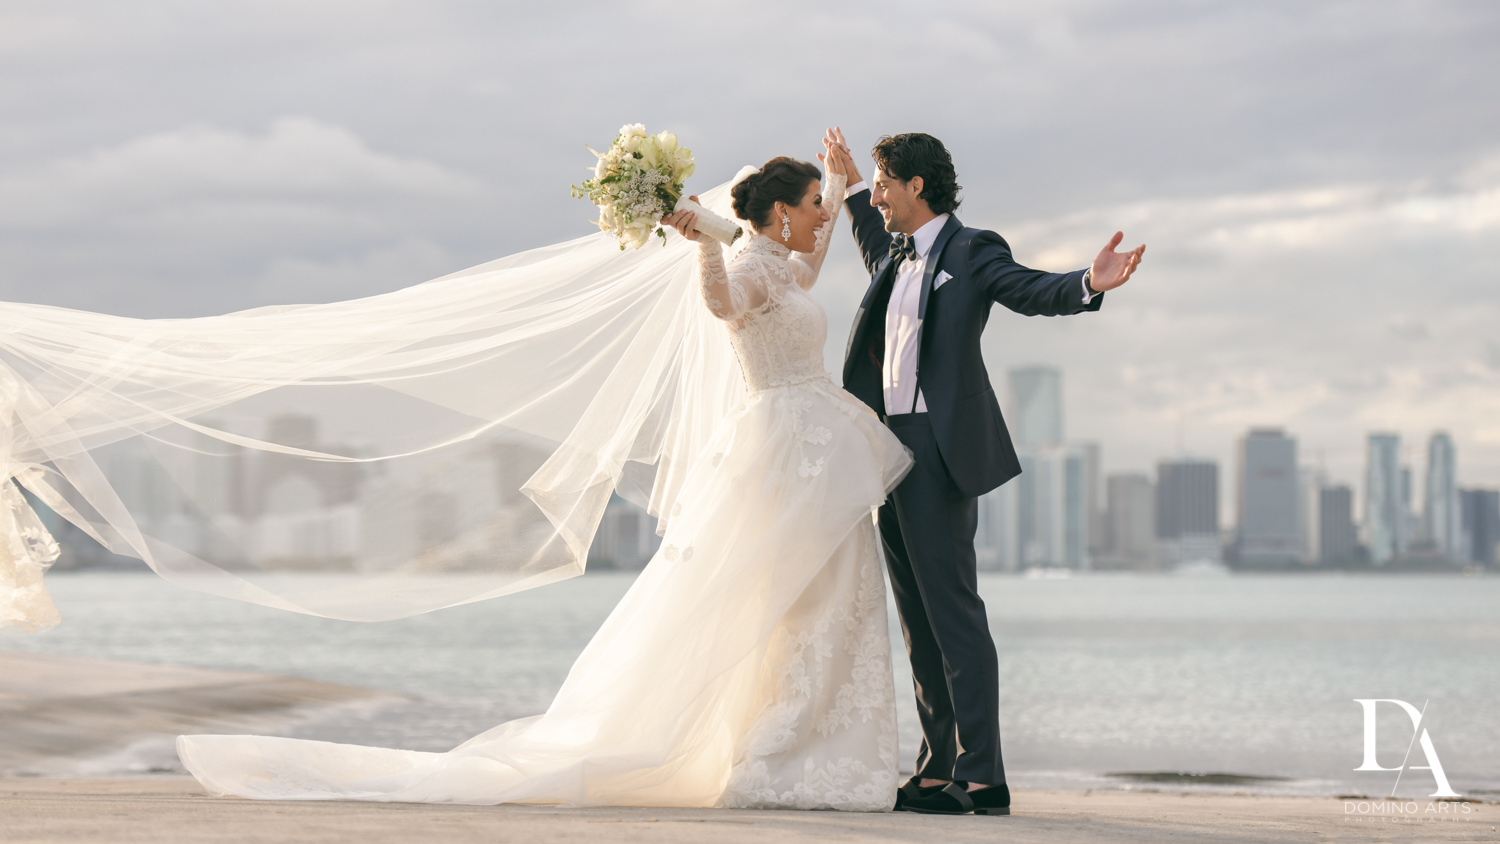 miami skyline at Luxurious Destination Wedding at Fisher Island Miami by Domino Arts Photography